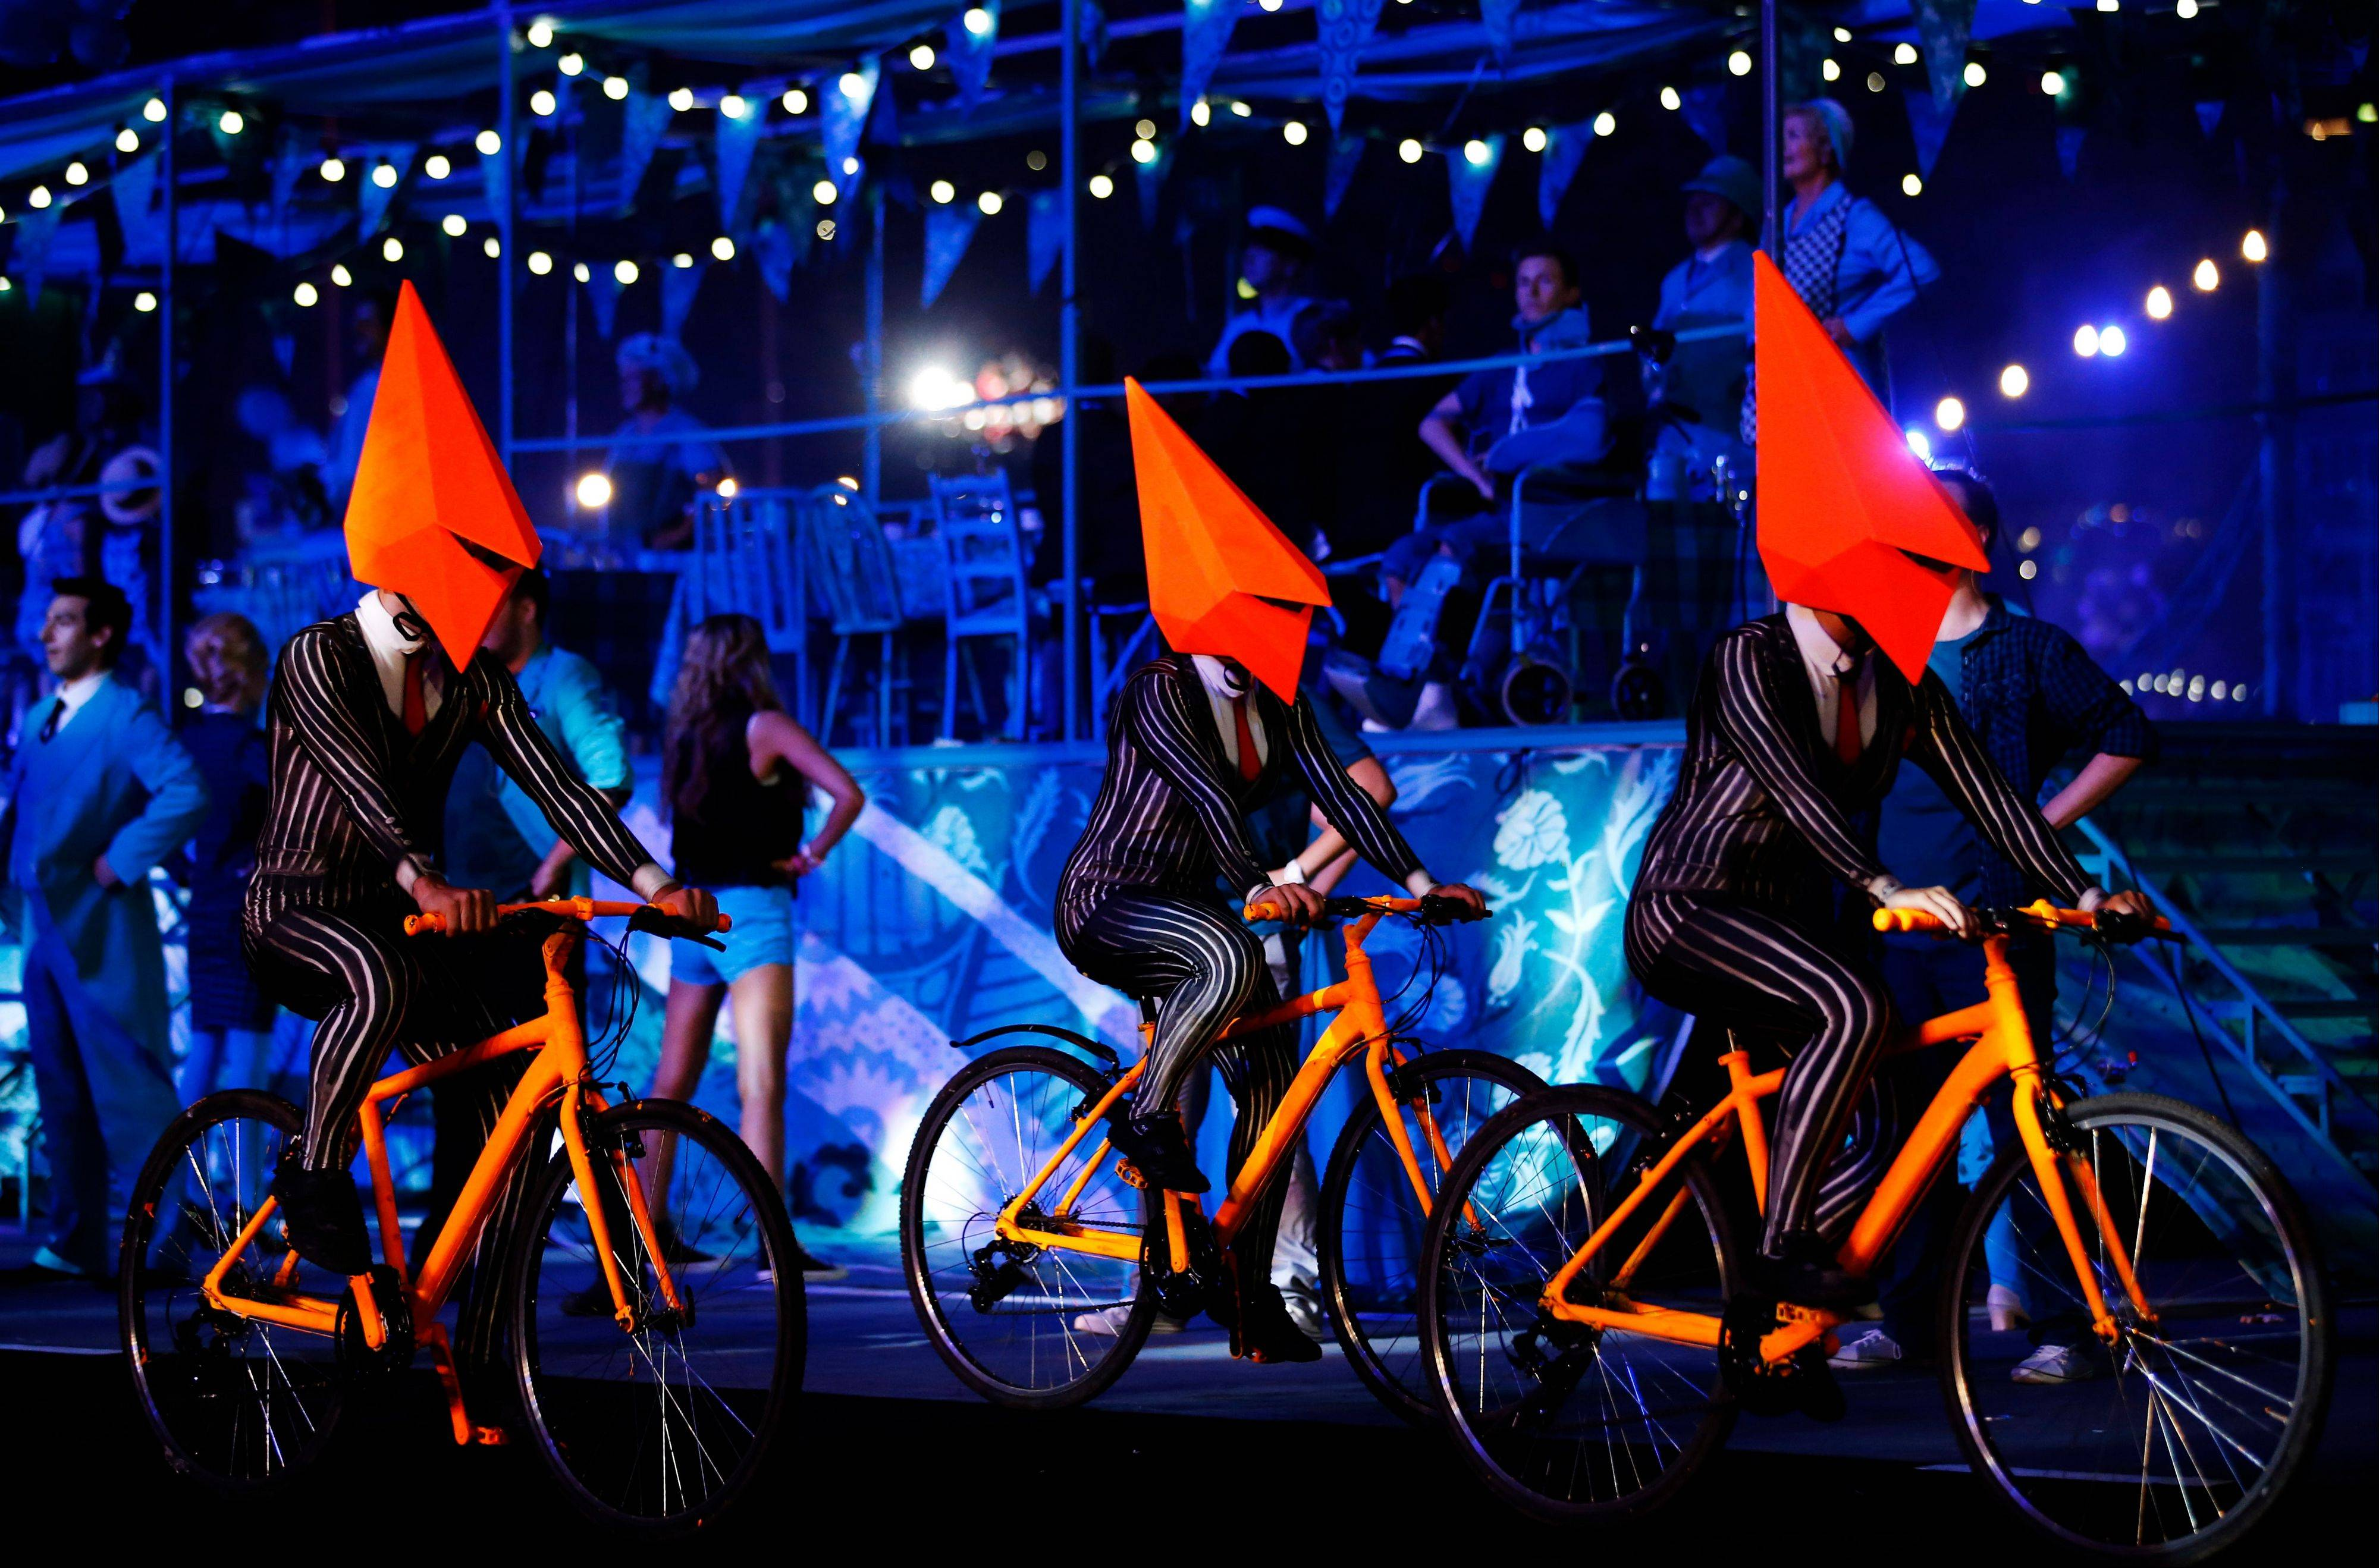 Performers cycle on the stage during the Closing Ceremony at the 2012 Summer Olympics.